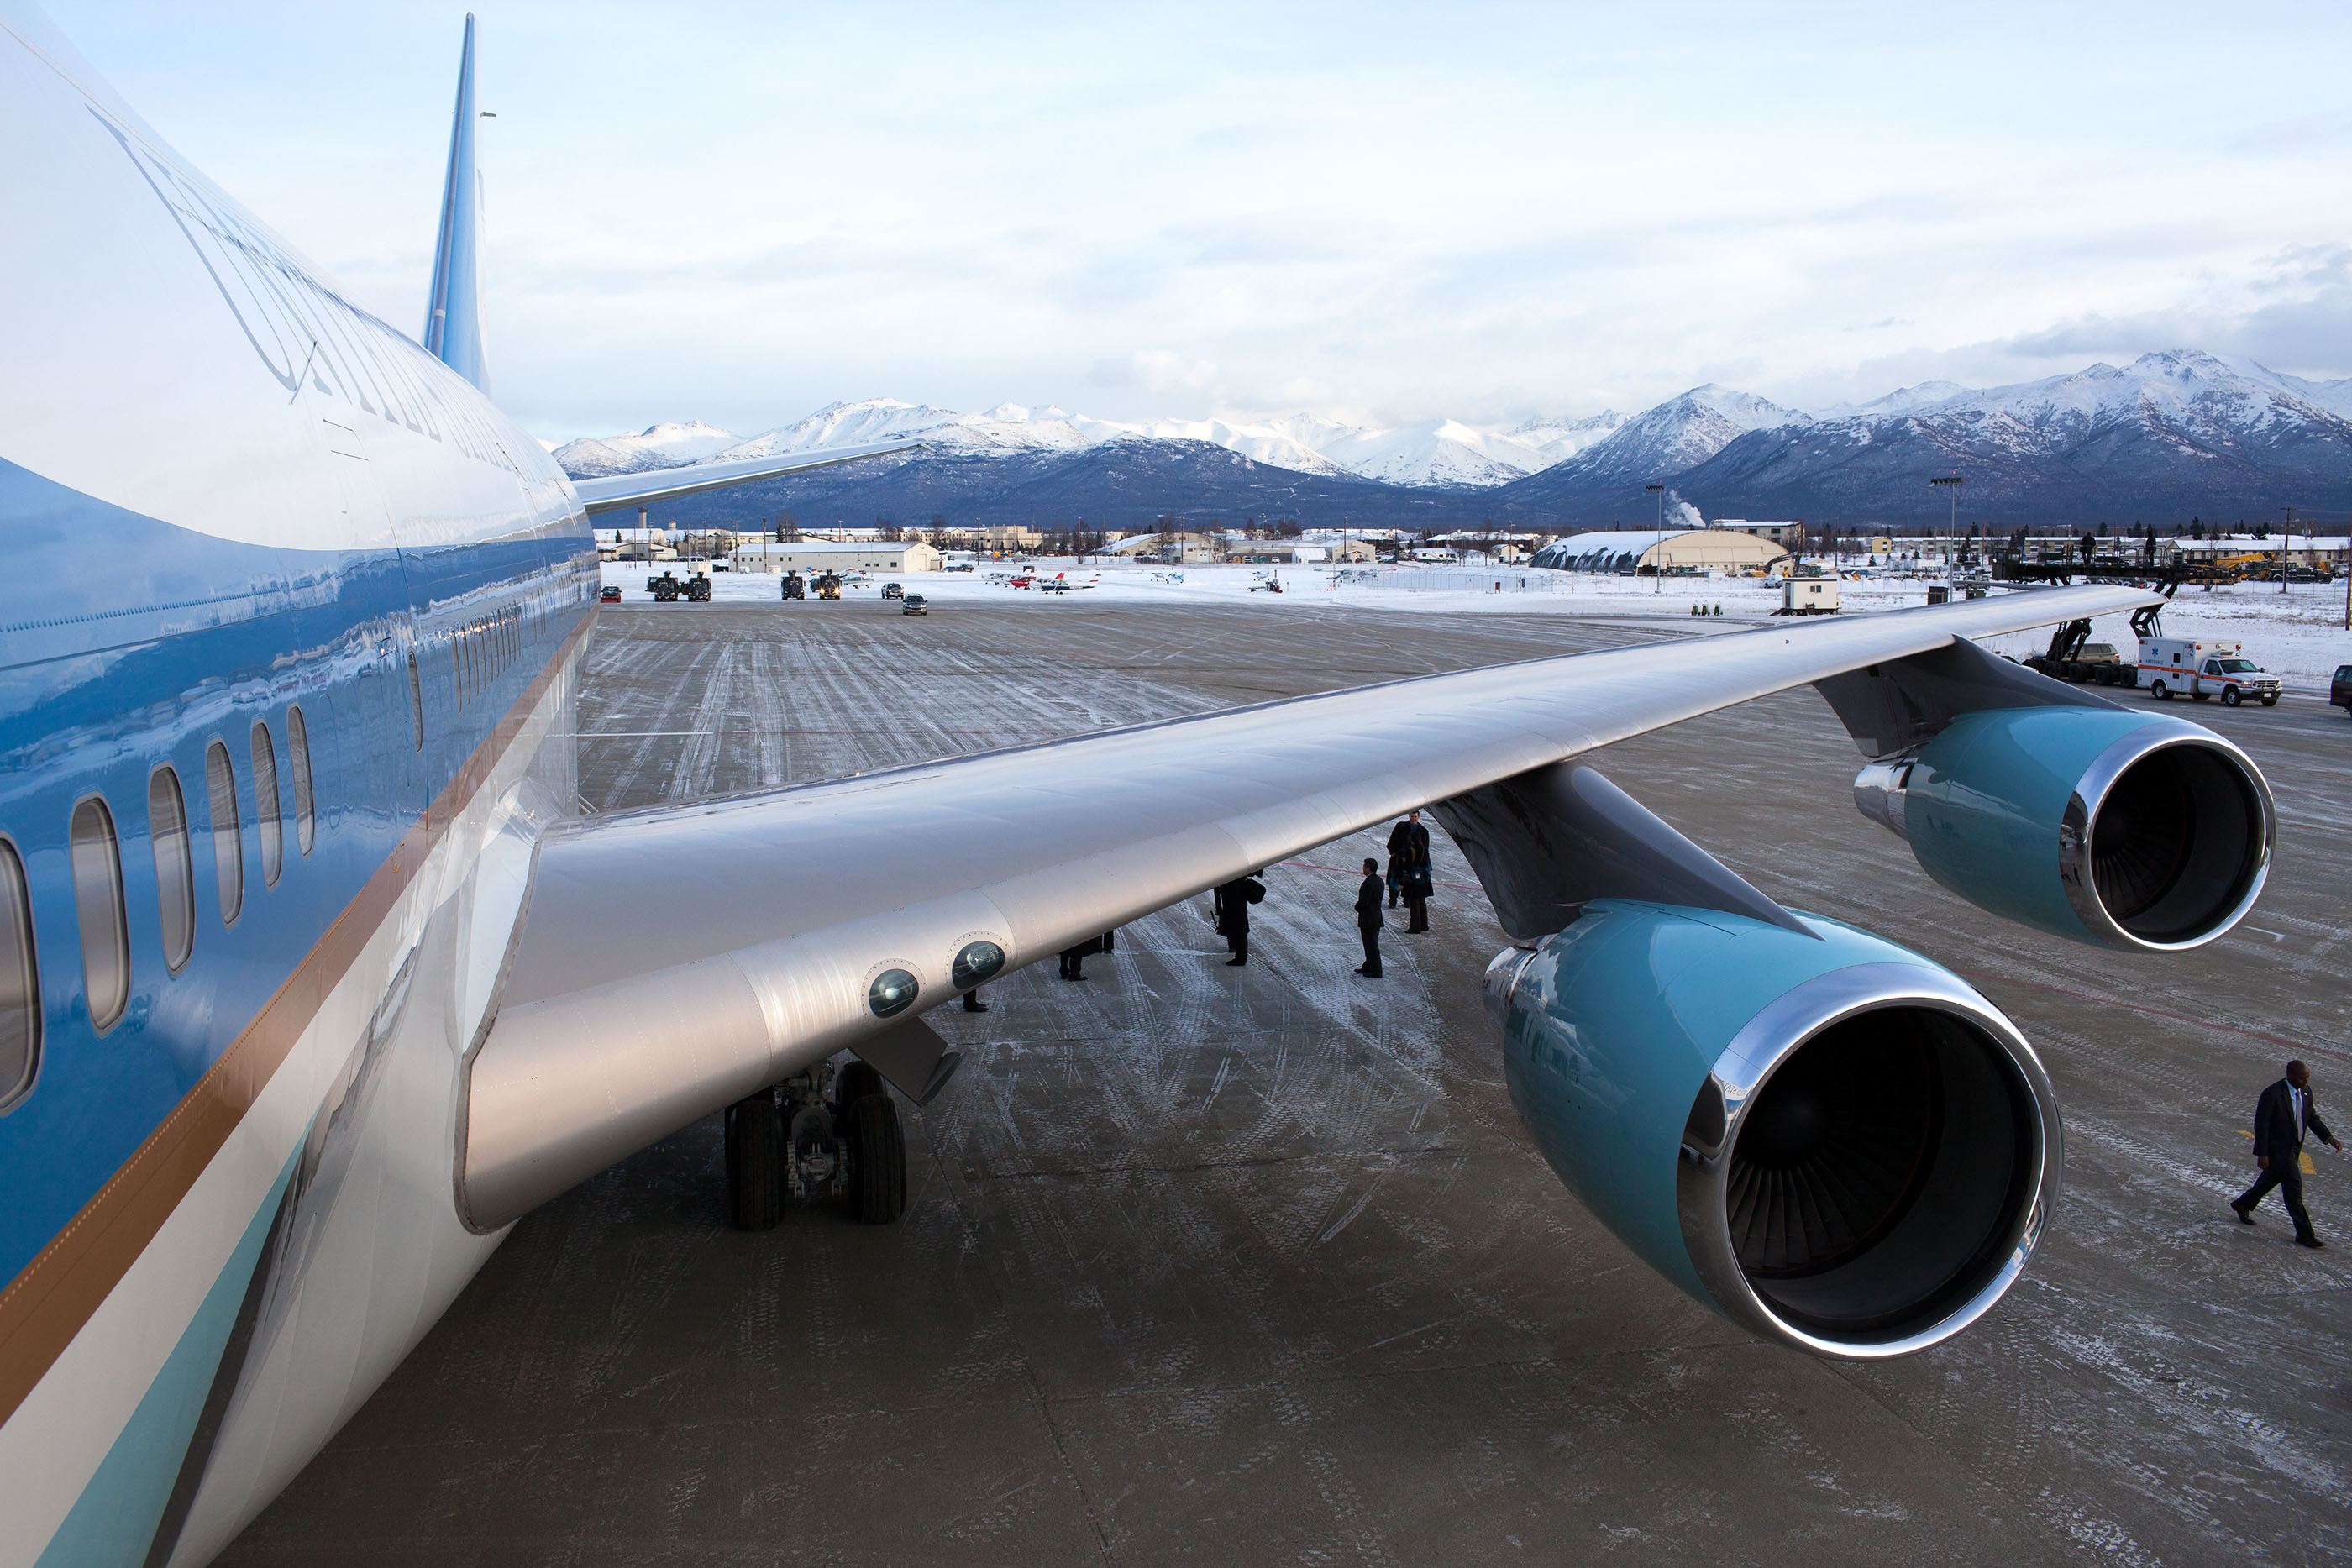 Alaska. Nov 12, 2009. Air Force One refueling at Elmendorf Air Force Base. (Official White House photo by Pete Souza)